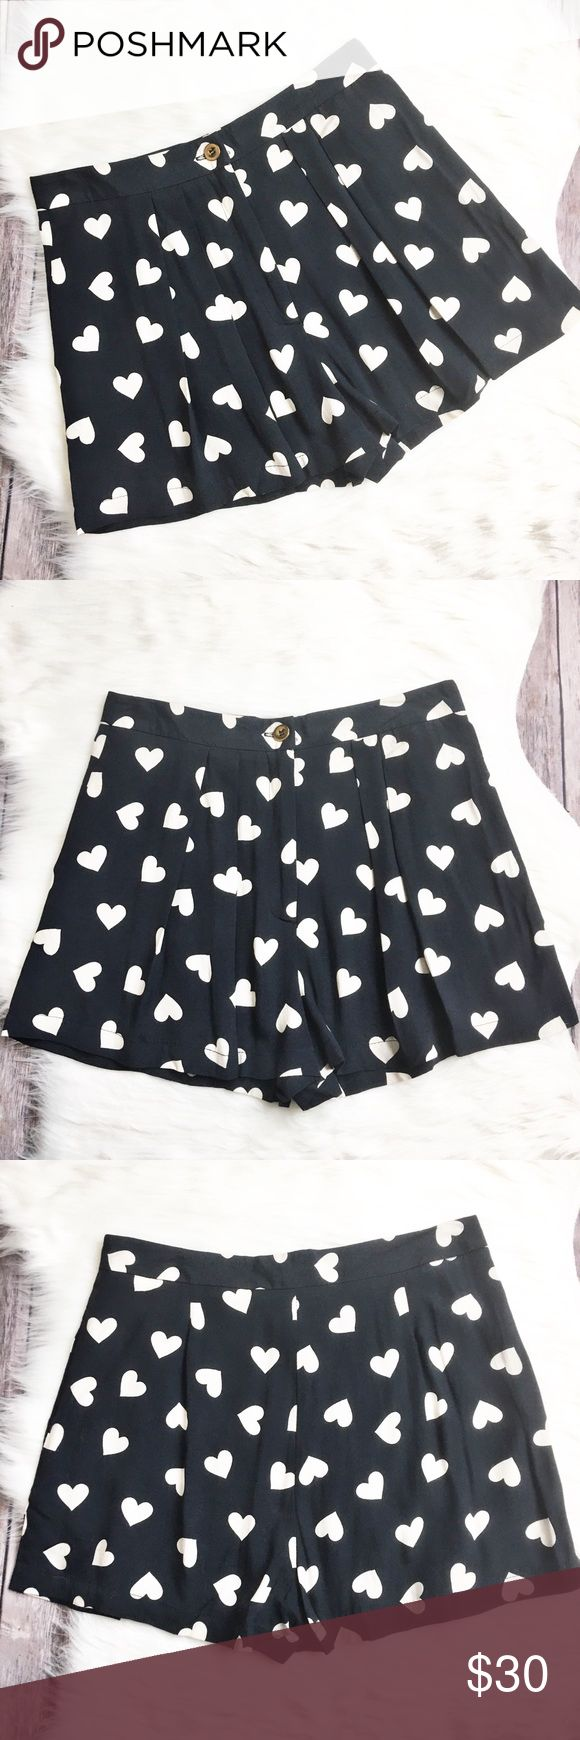 Topshop 💜 Shorts Adorable shorts made by Topshop.  Navy blue in color with cream colored hearts. Features a pleated front with pockets. Material is made of 100% viscose. Measurements laid flat: waist 14 inches, hip 19 inches, and inseam 2 inches. Shorts are in very good condition. Topshop Shorts